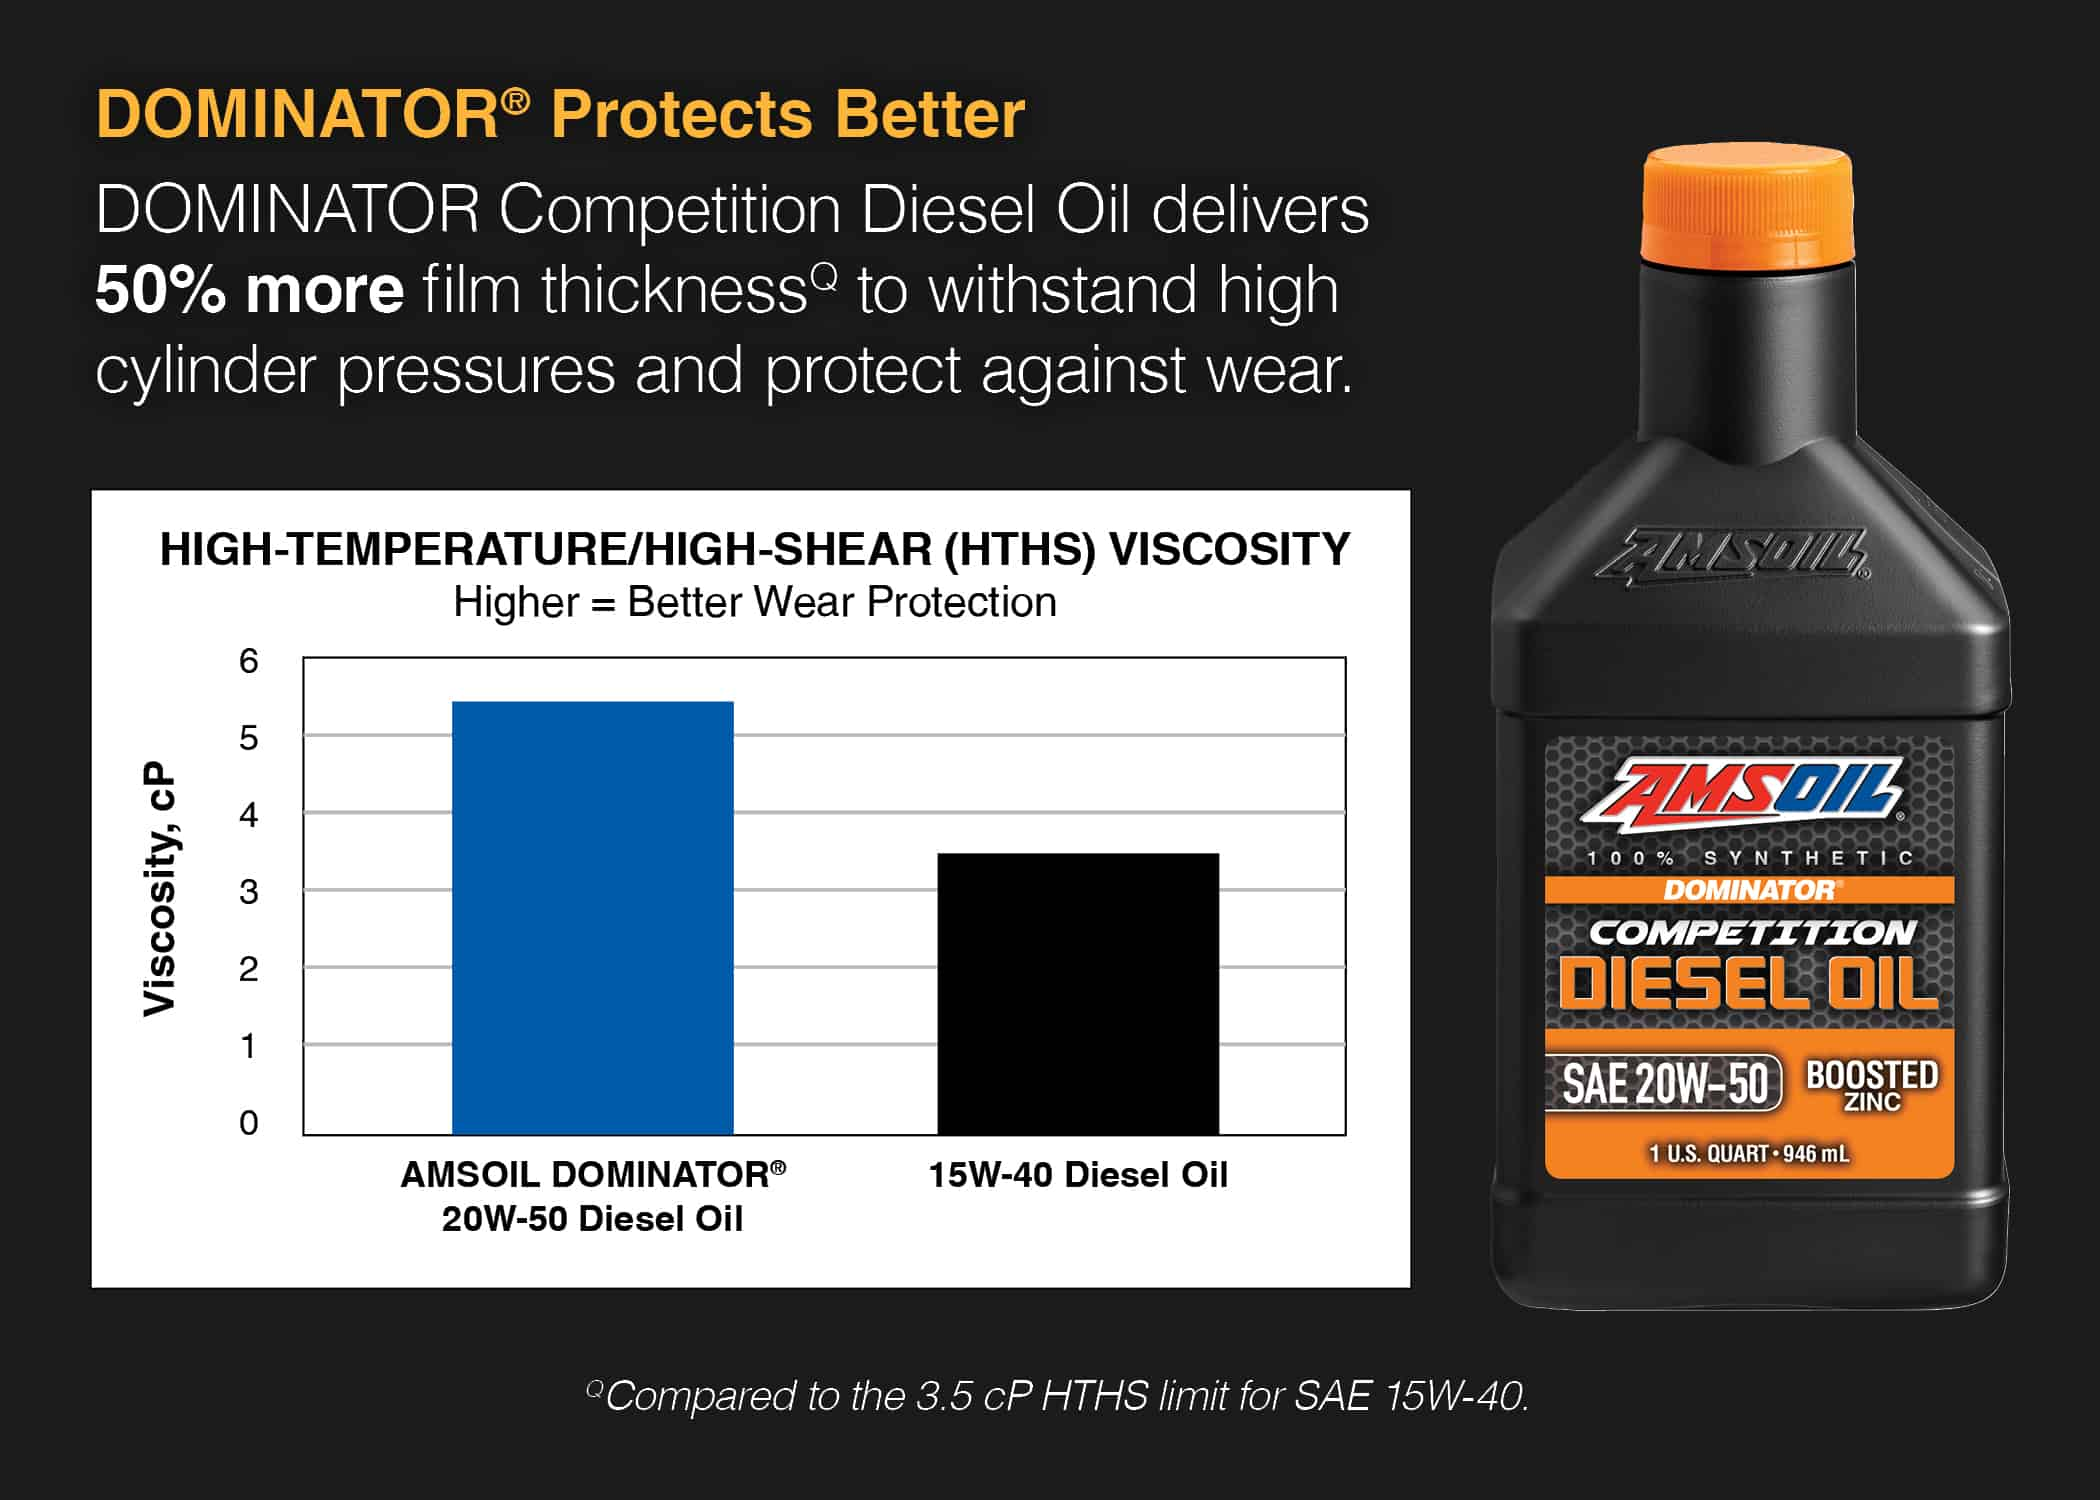 DOMINATOR® Competition Diesel Oil